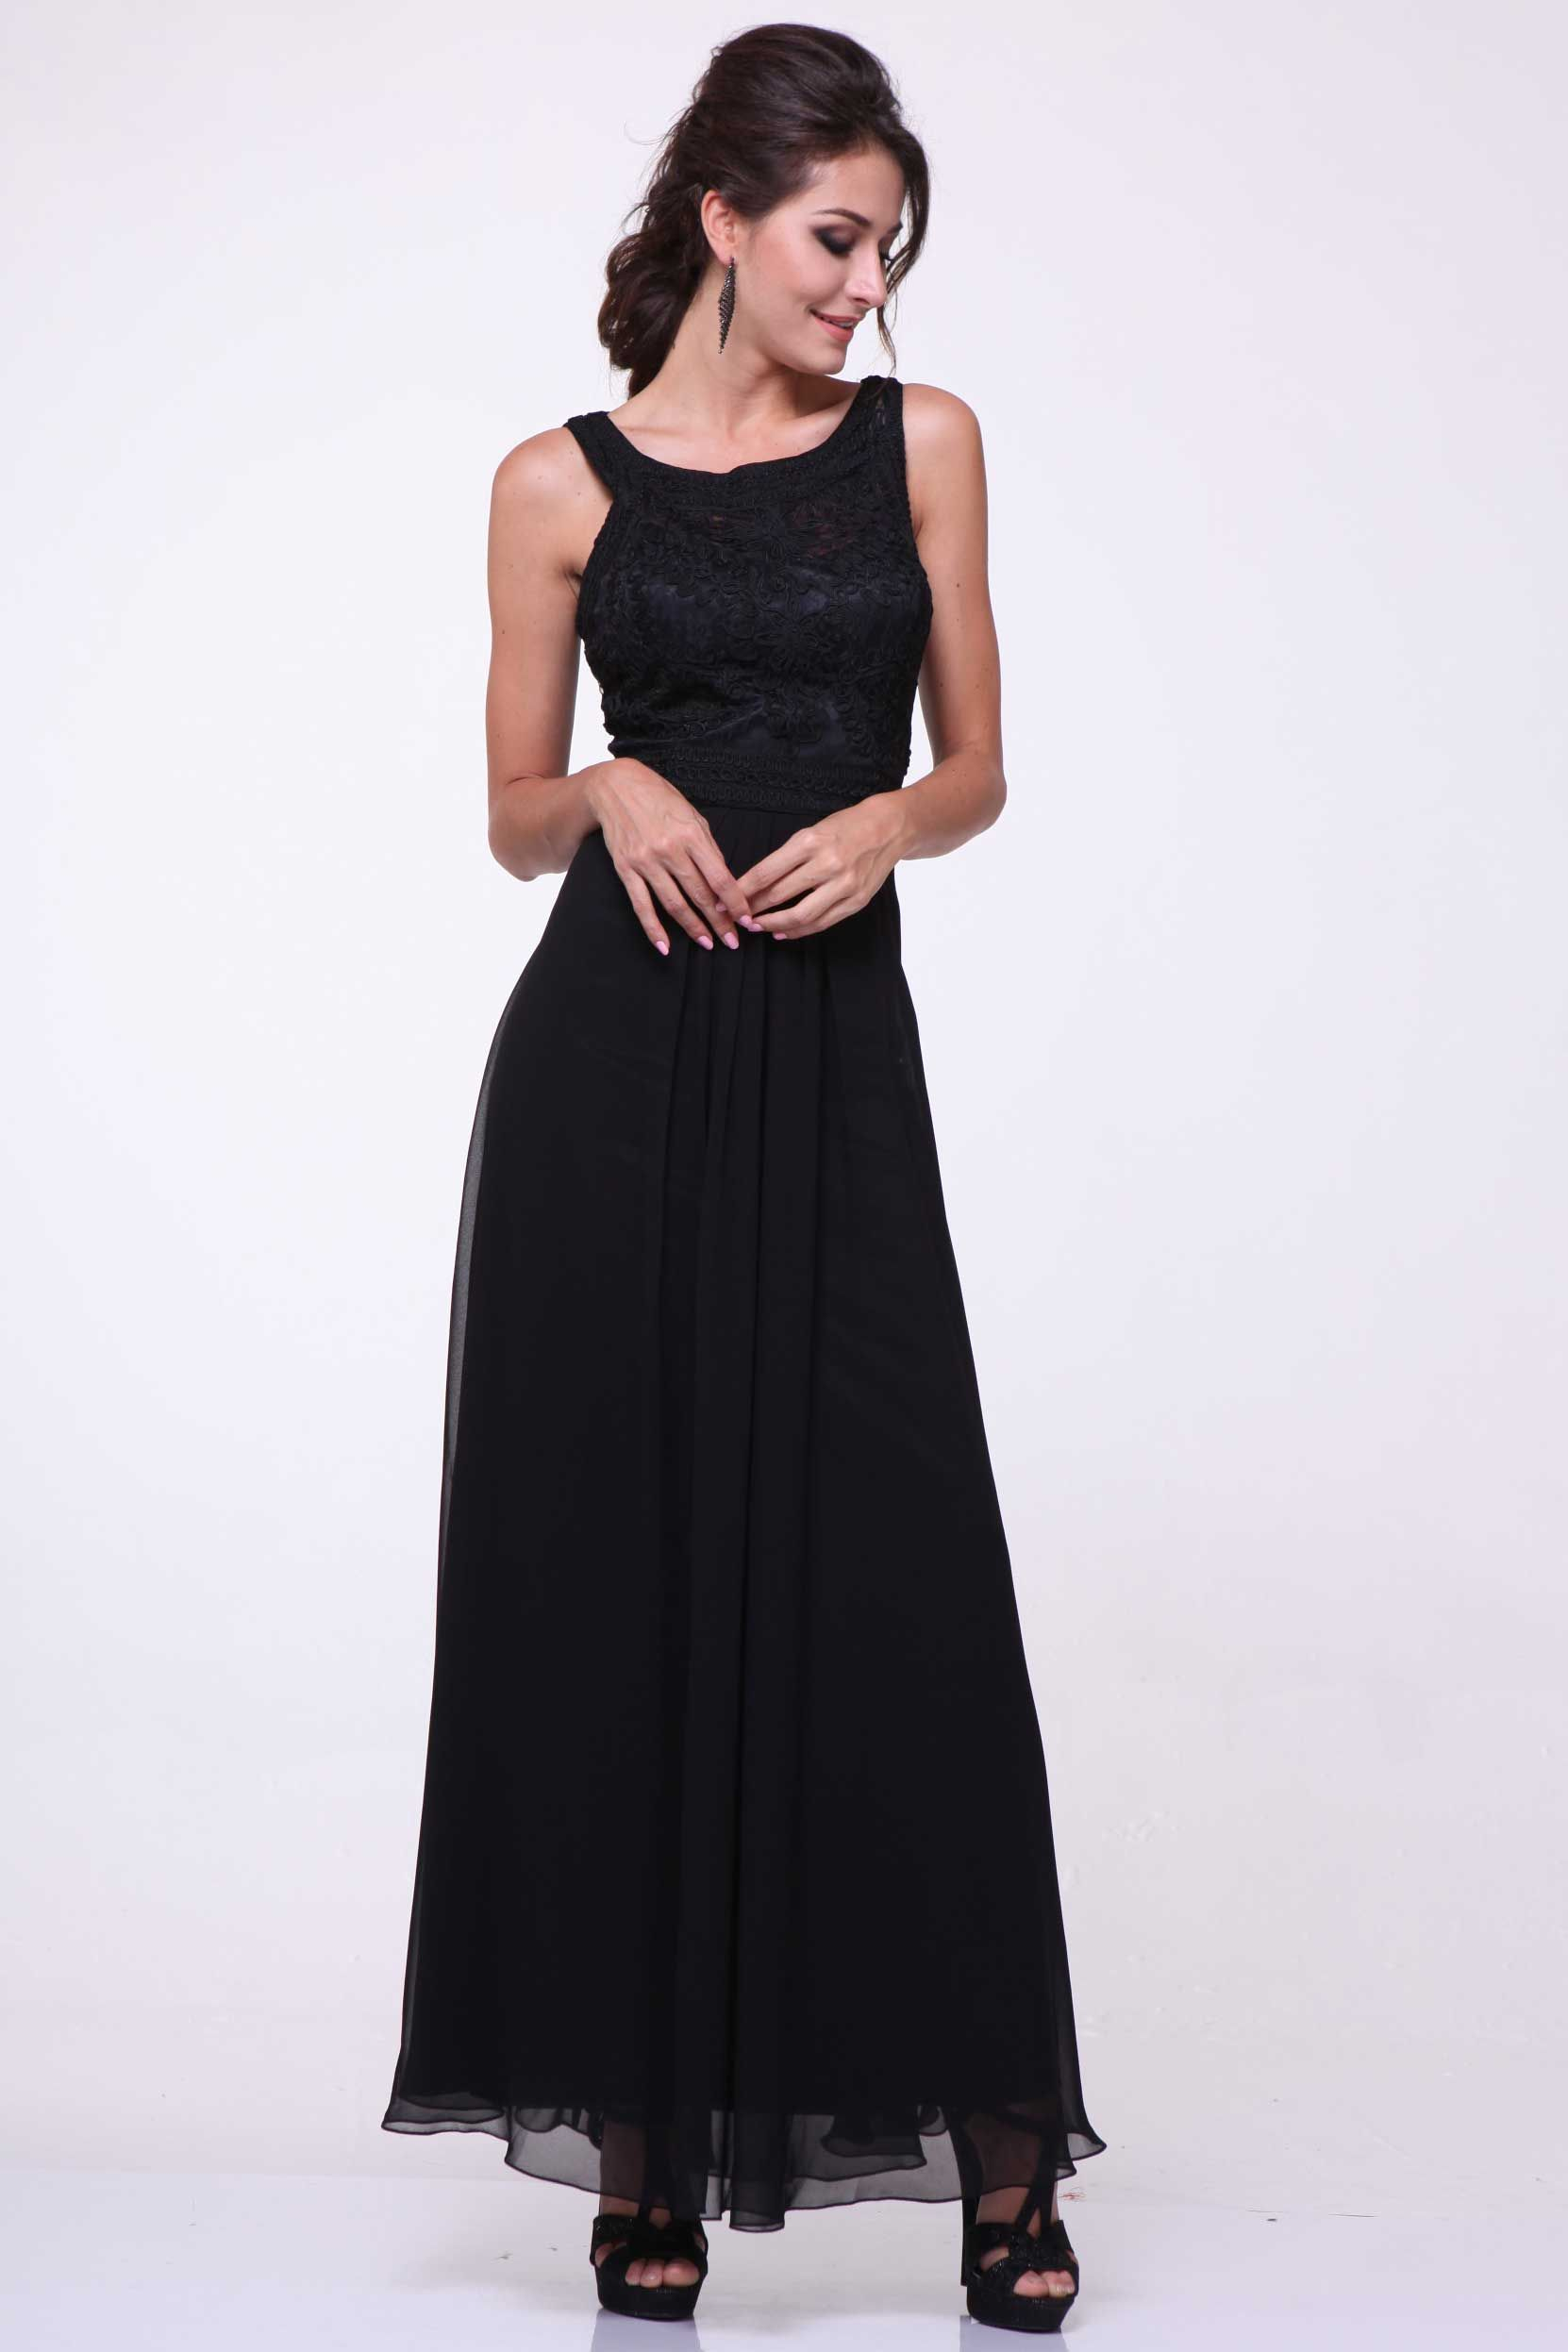 Evening Long Dress with Sheer Back CD1938 Full Length, A-Line Prom Evening Dress, Jewel Neckline, Sleeveless, Fully Embroidery Appliqued Top, Illusion Cut-out Back with Floral Applique, Solid Color Layered Skirt. https://www.smcfashion.com/wholesale-evening-dresses/evening-dress-cd1938